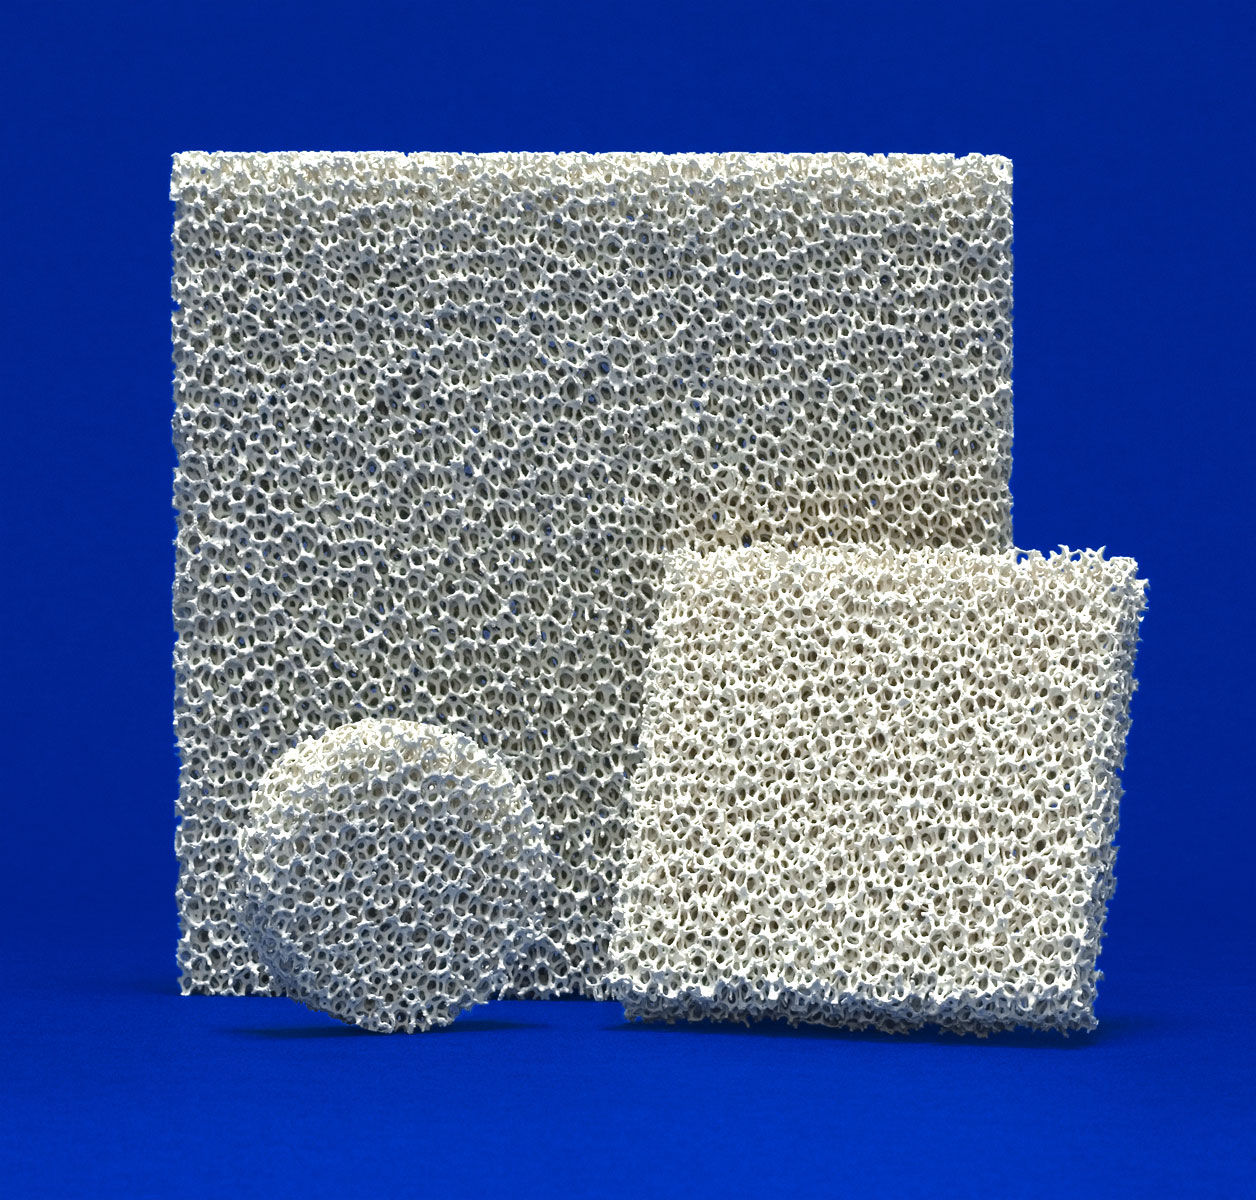 SELEE® filters for iron filtration offer superior dimensional tolerances.